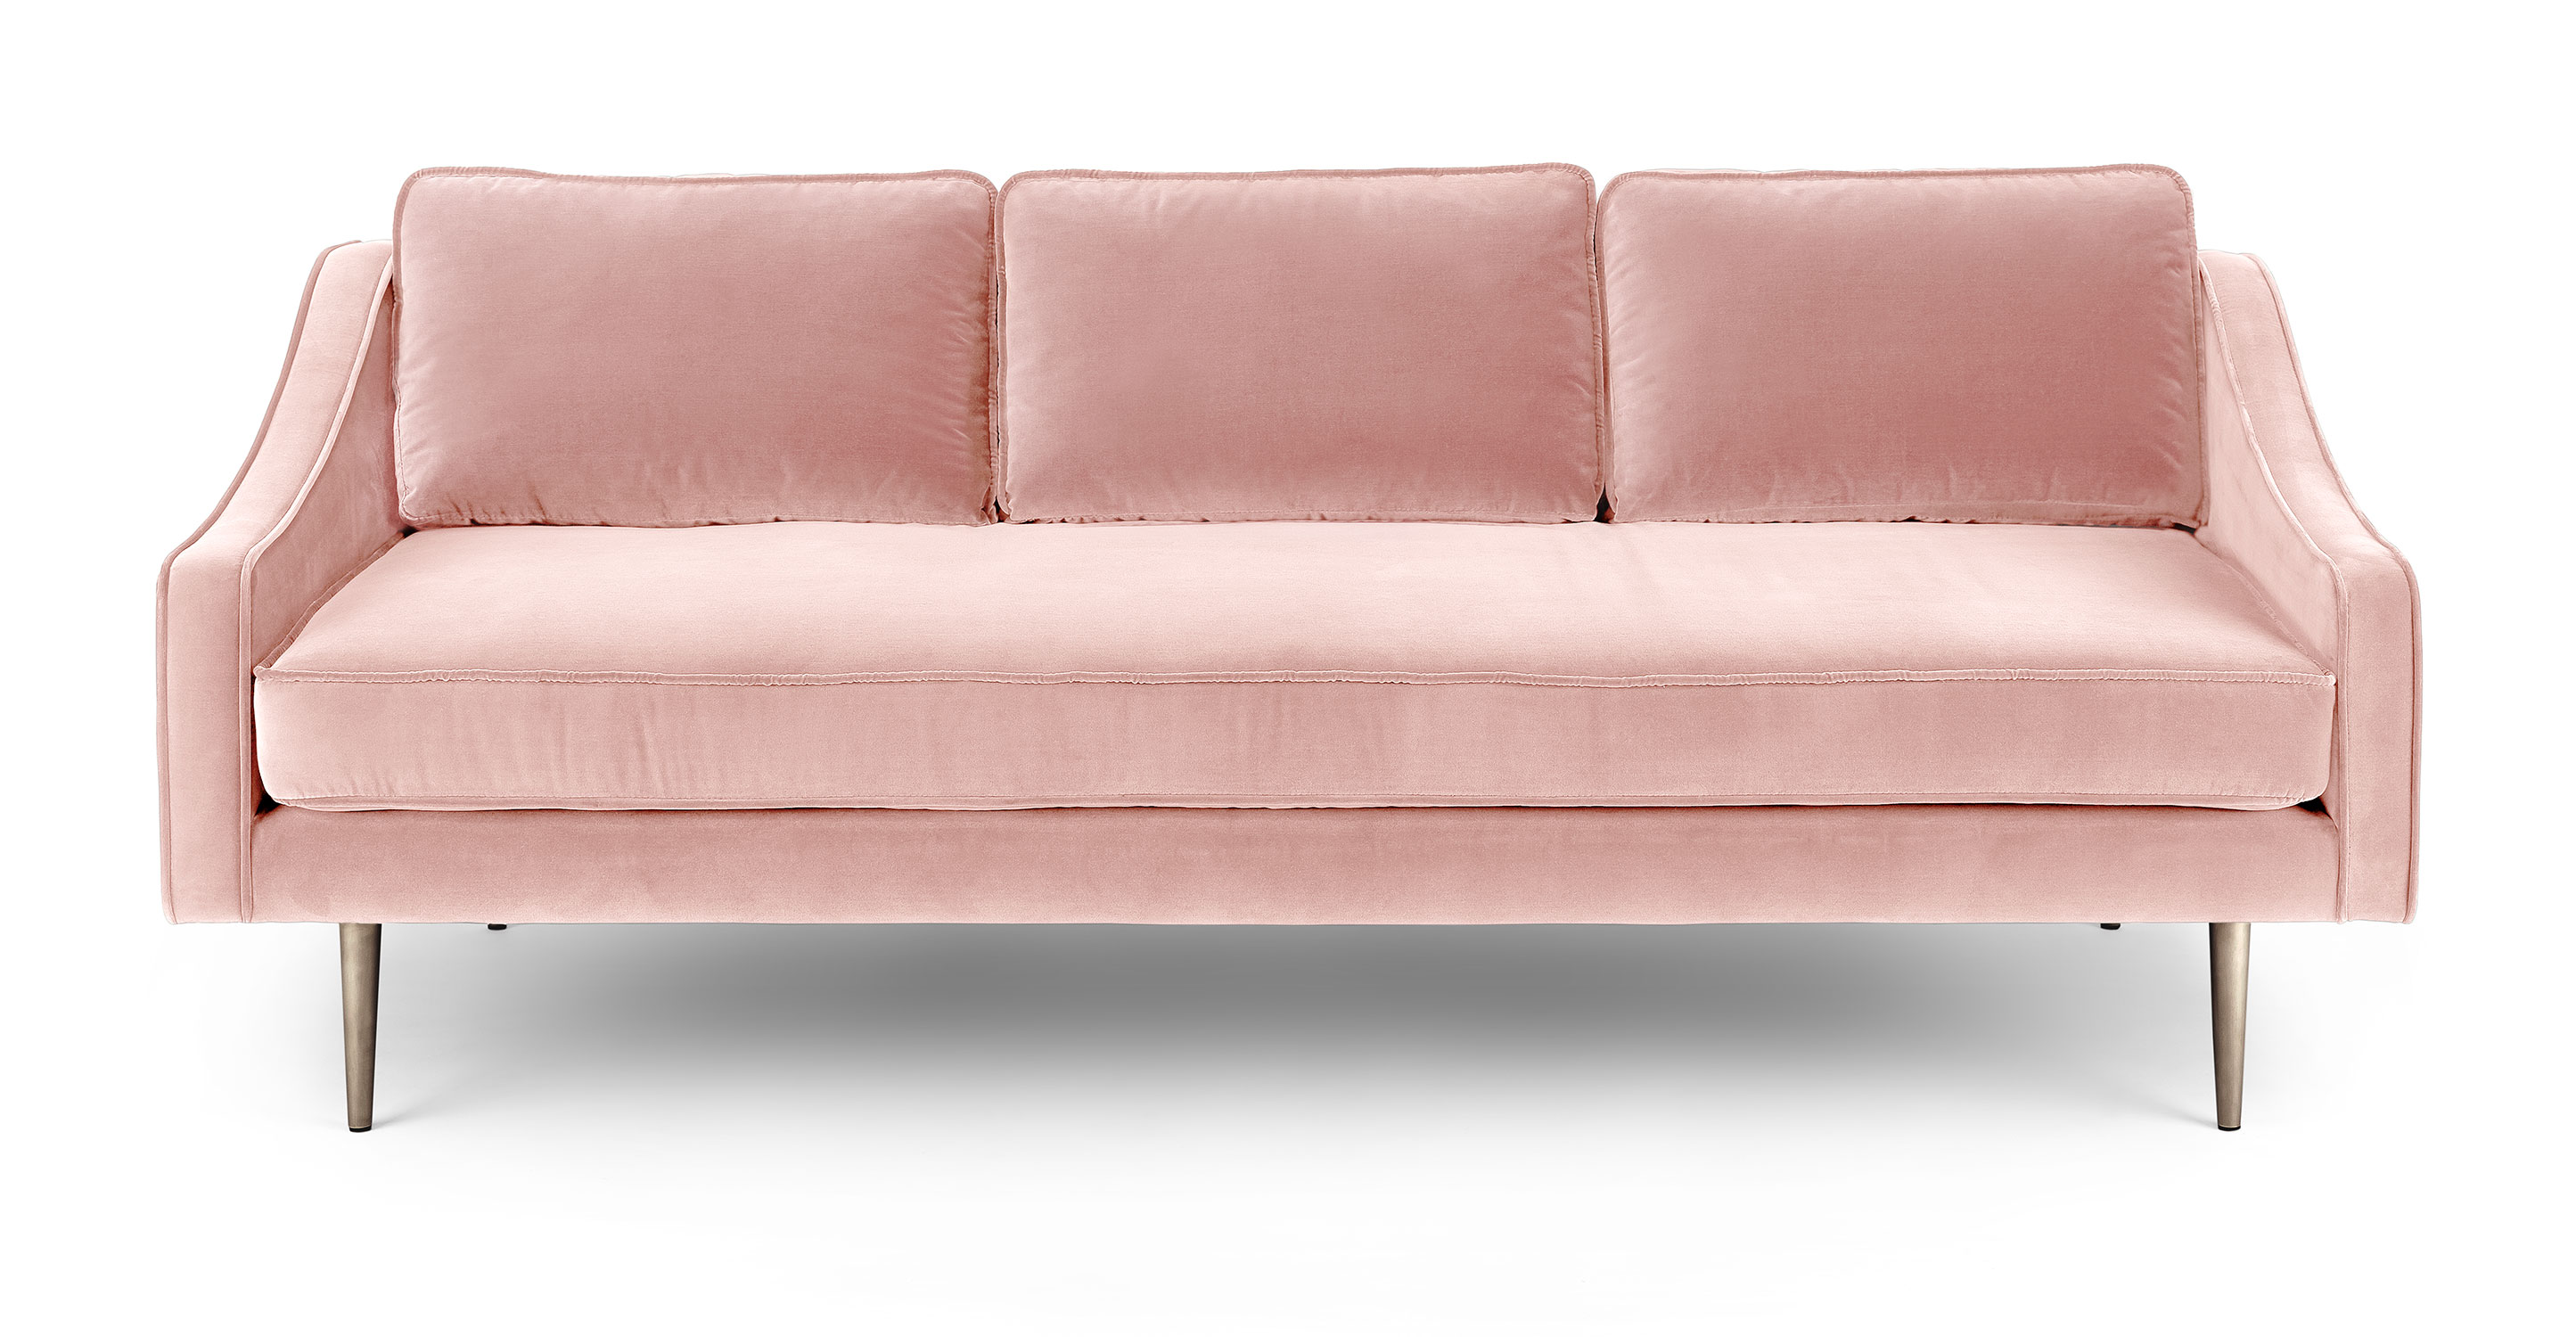 light pink sofa bed sleeper with air dream mattress promotion code brokeasshome